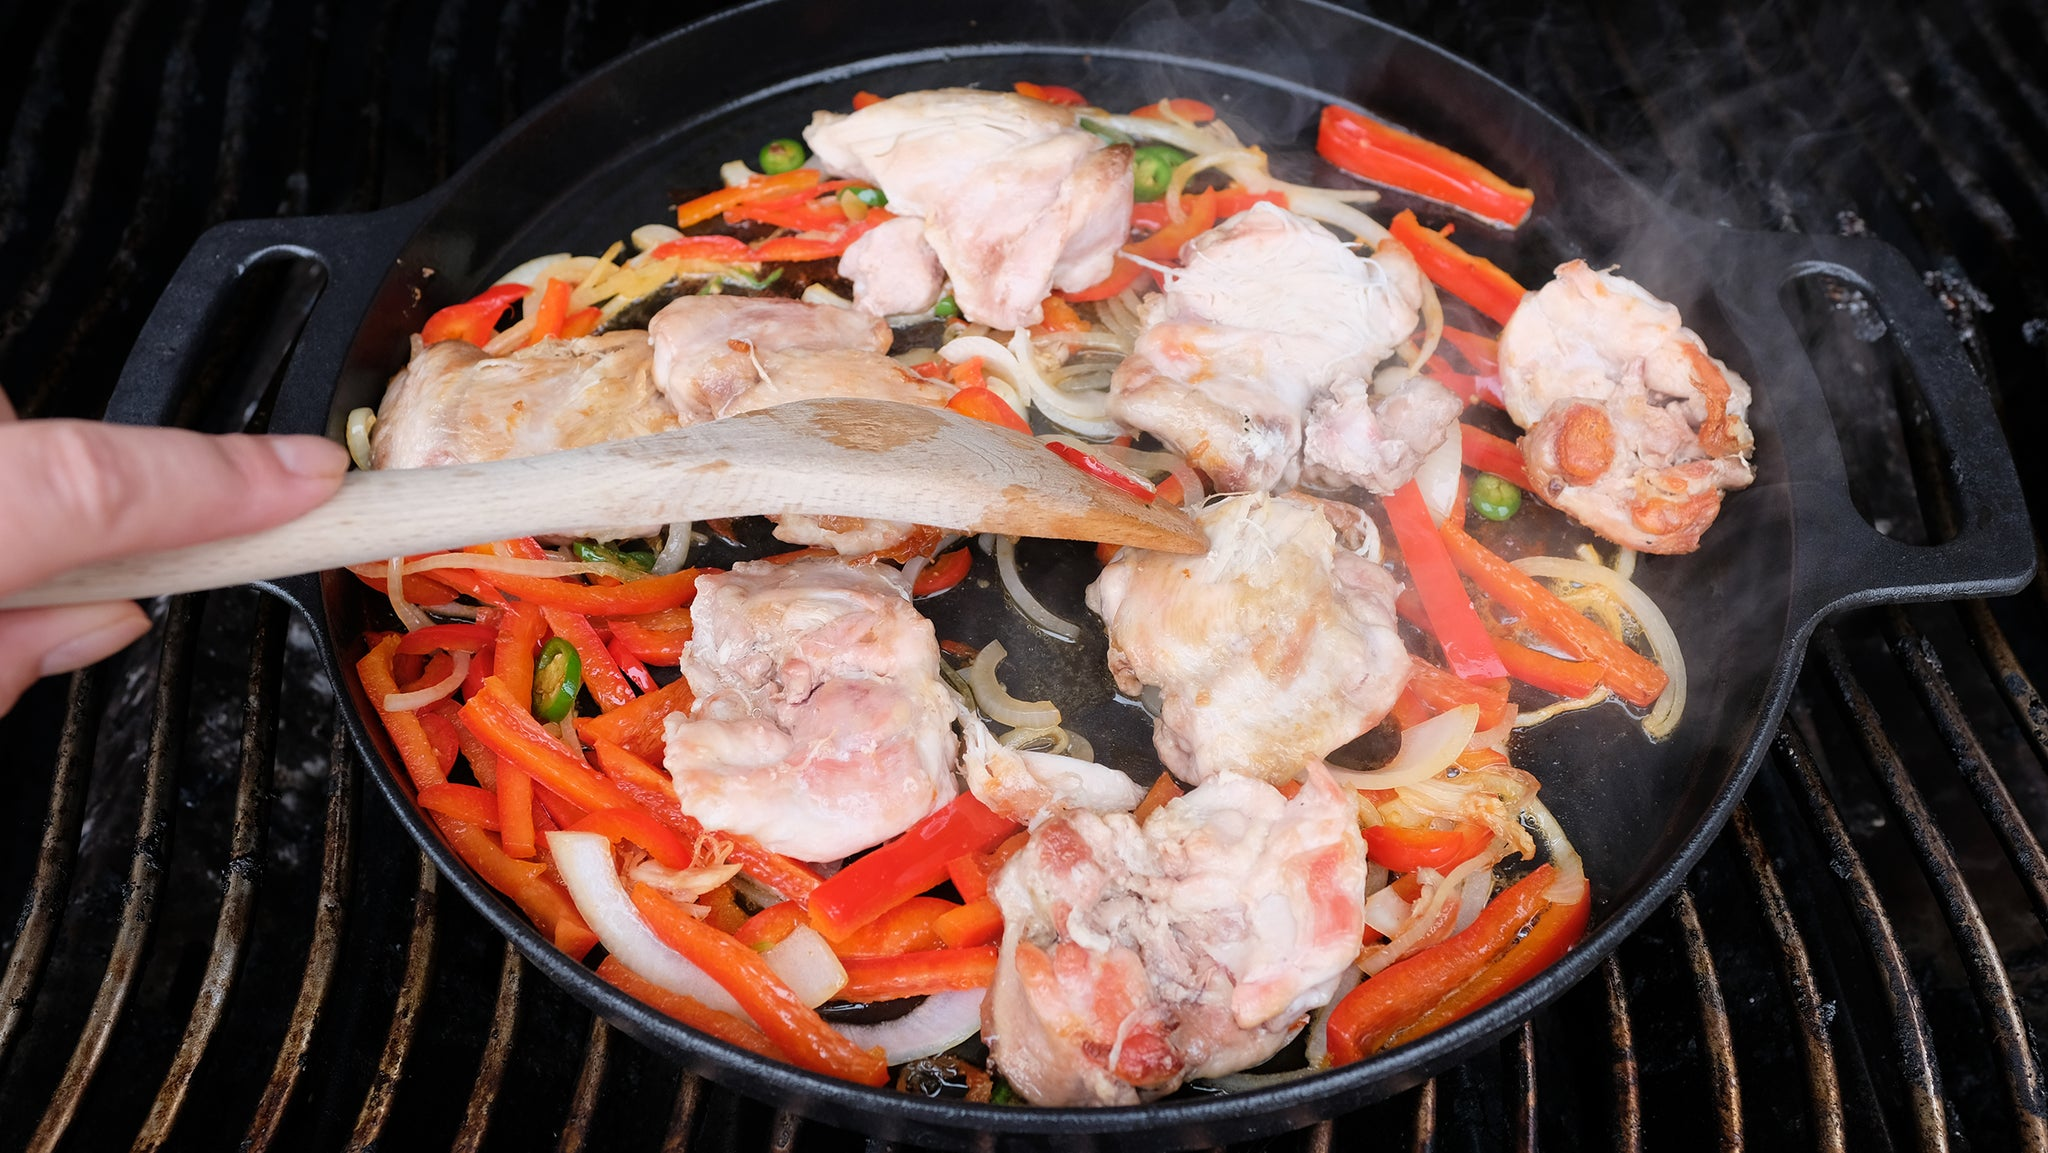 Sliced peppers, onion and hot peppers in pan with chicken & chicken juice